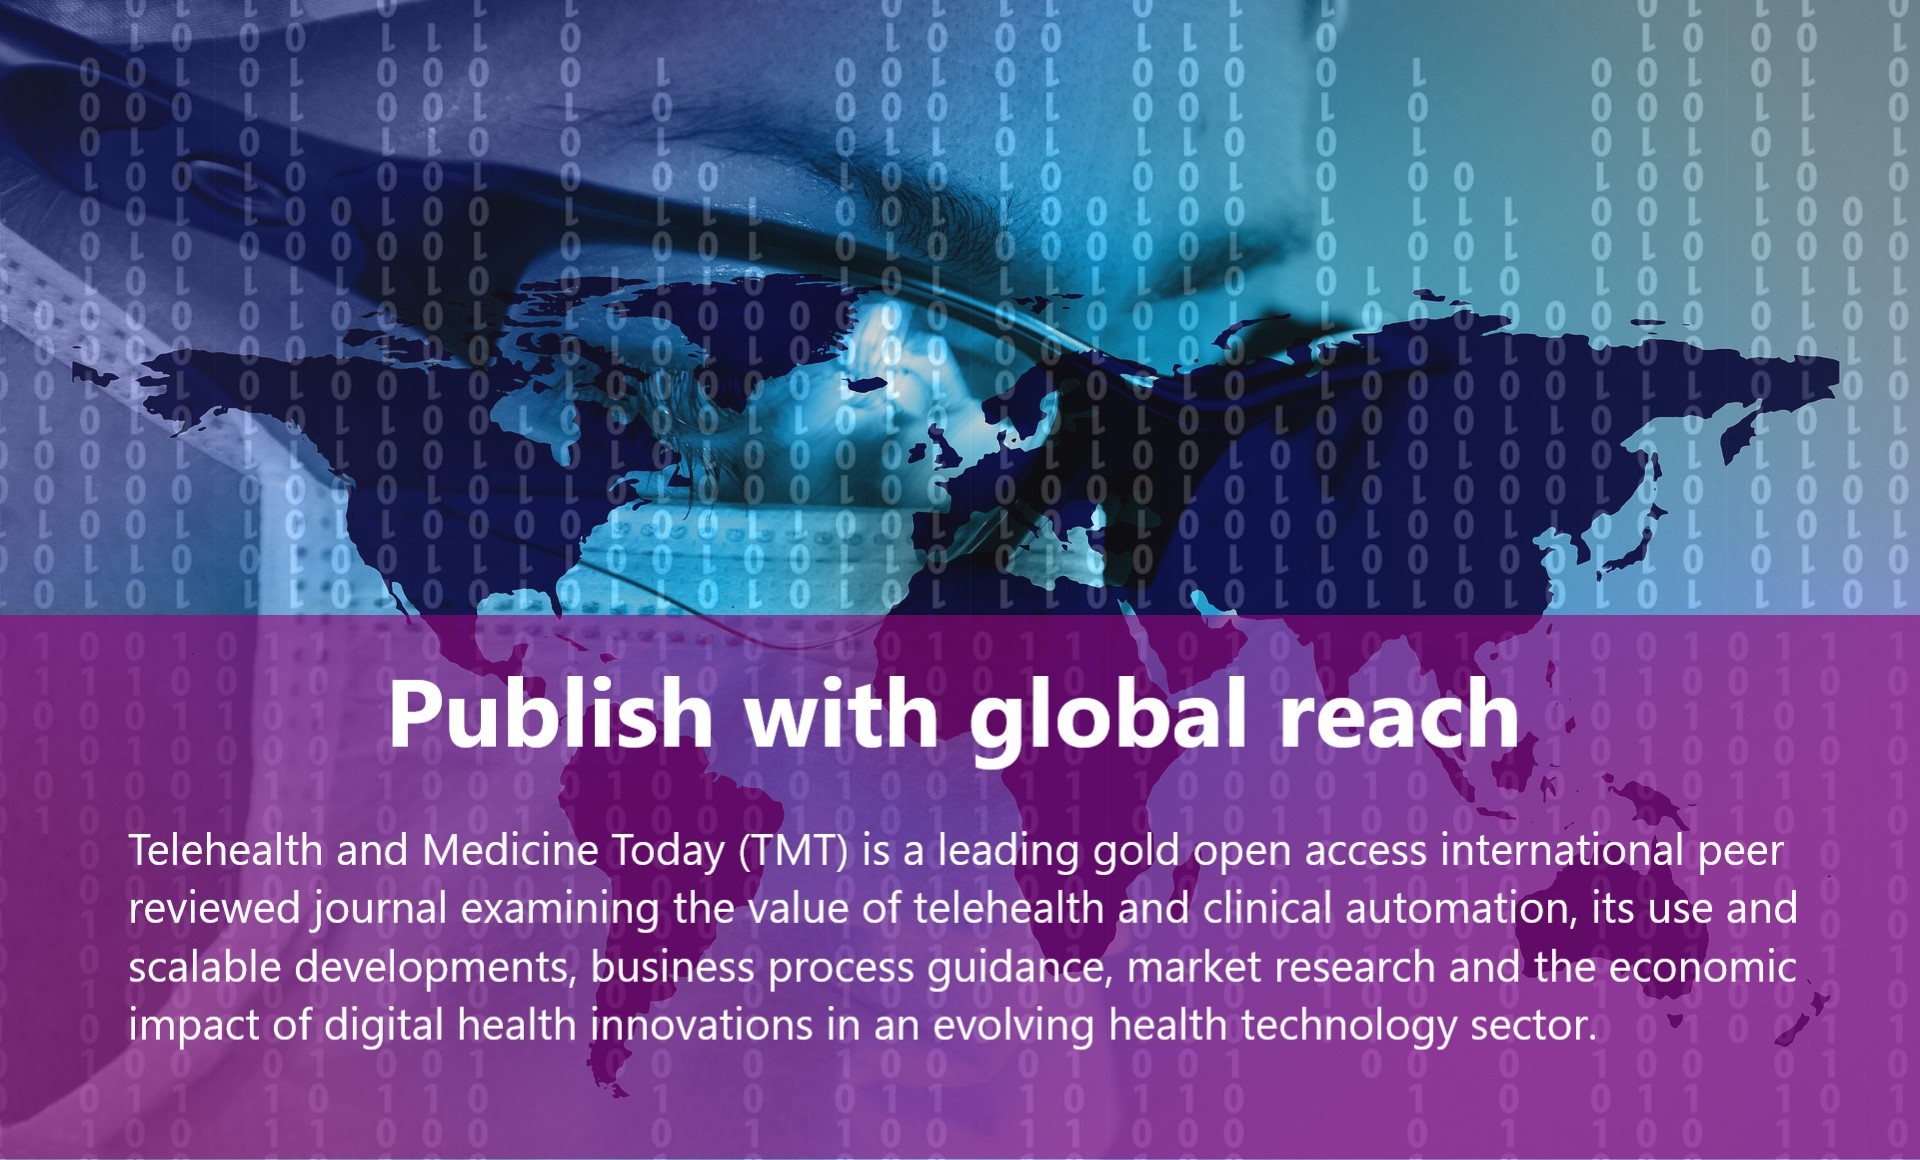 Telehealth and Medicine Today gold open access journal